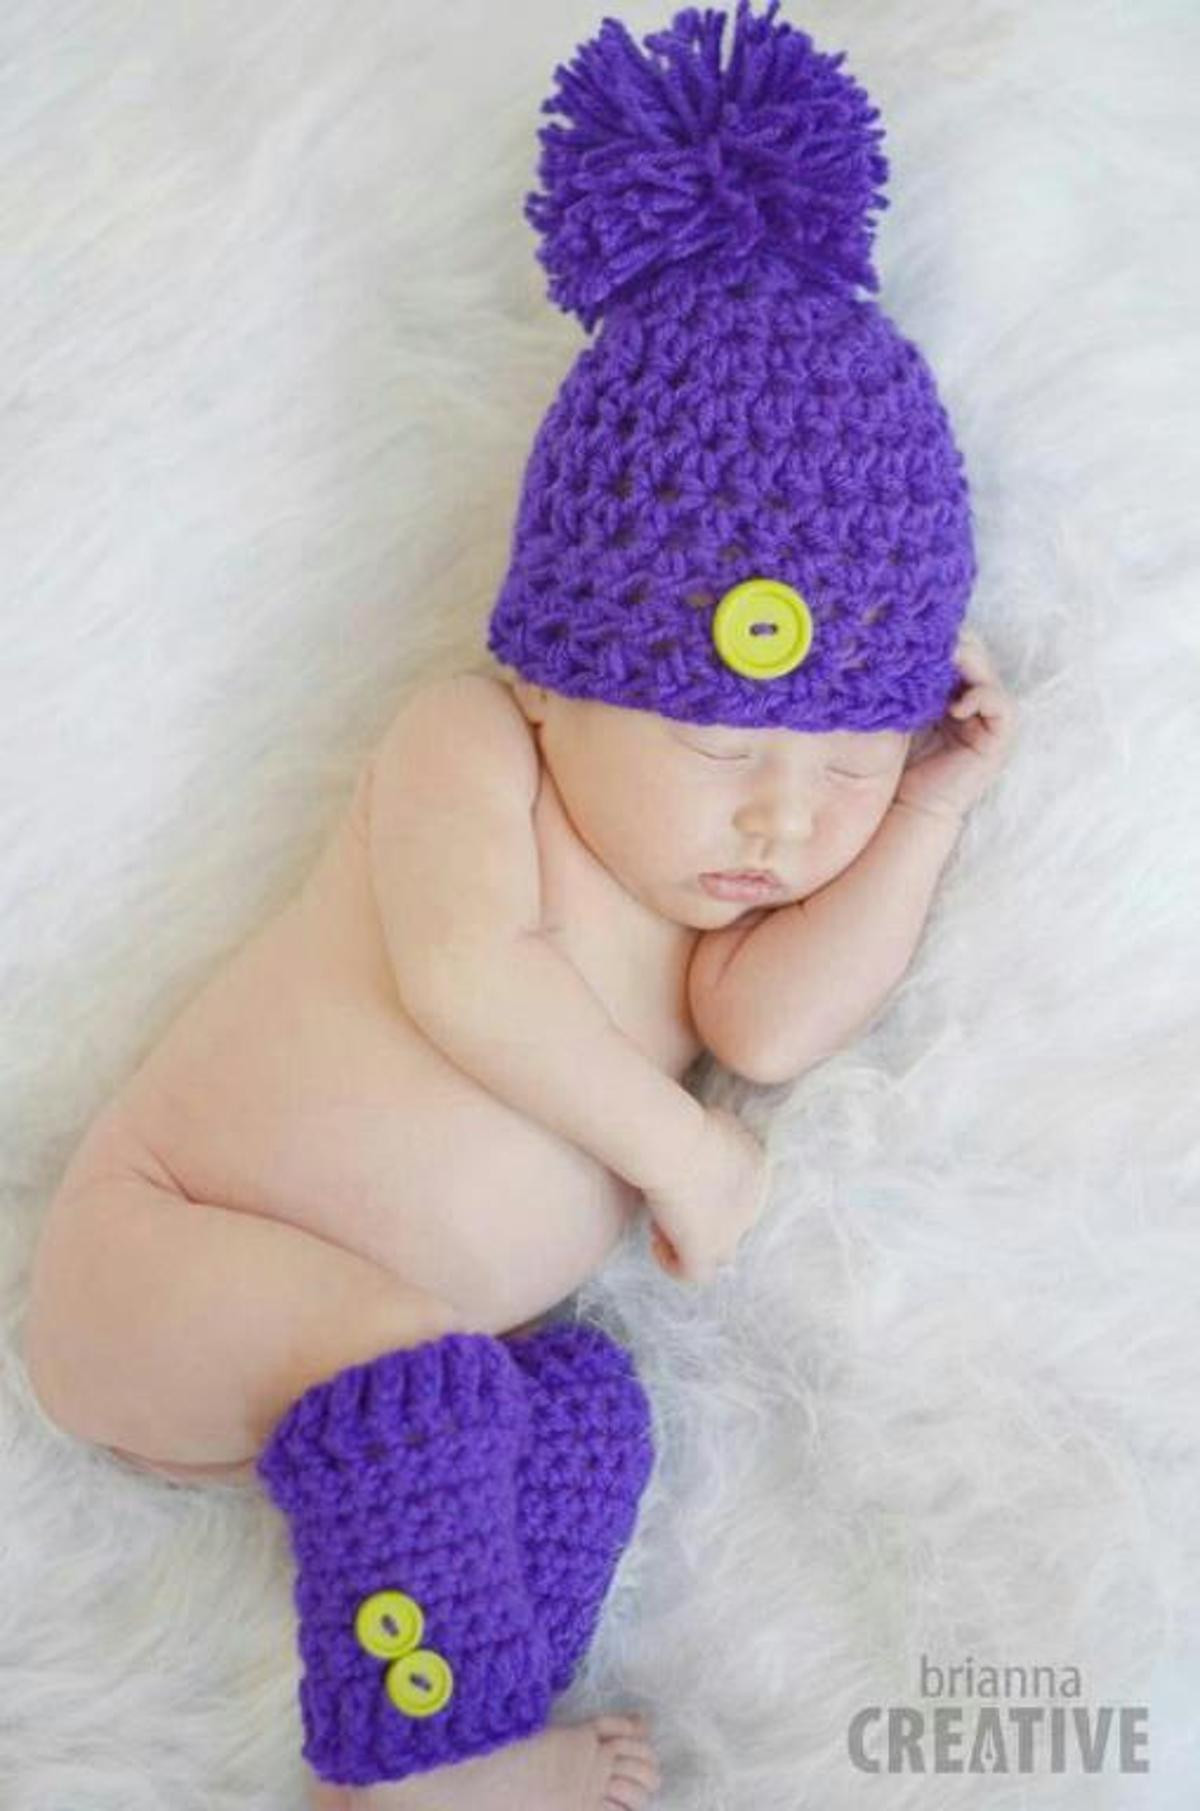 Newborn Baby Hat Crochet Pattern Best Of 12 Newborn Crochet Hat Patterns to Download for Free Of Superb 44 Pictures Newborn Baby Hat Crochet Pattern